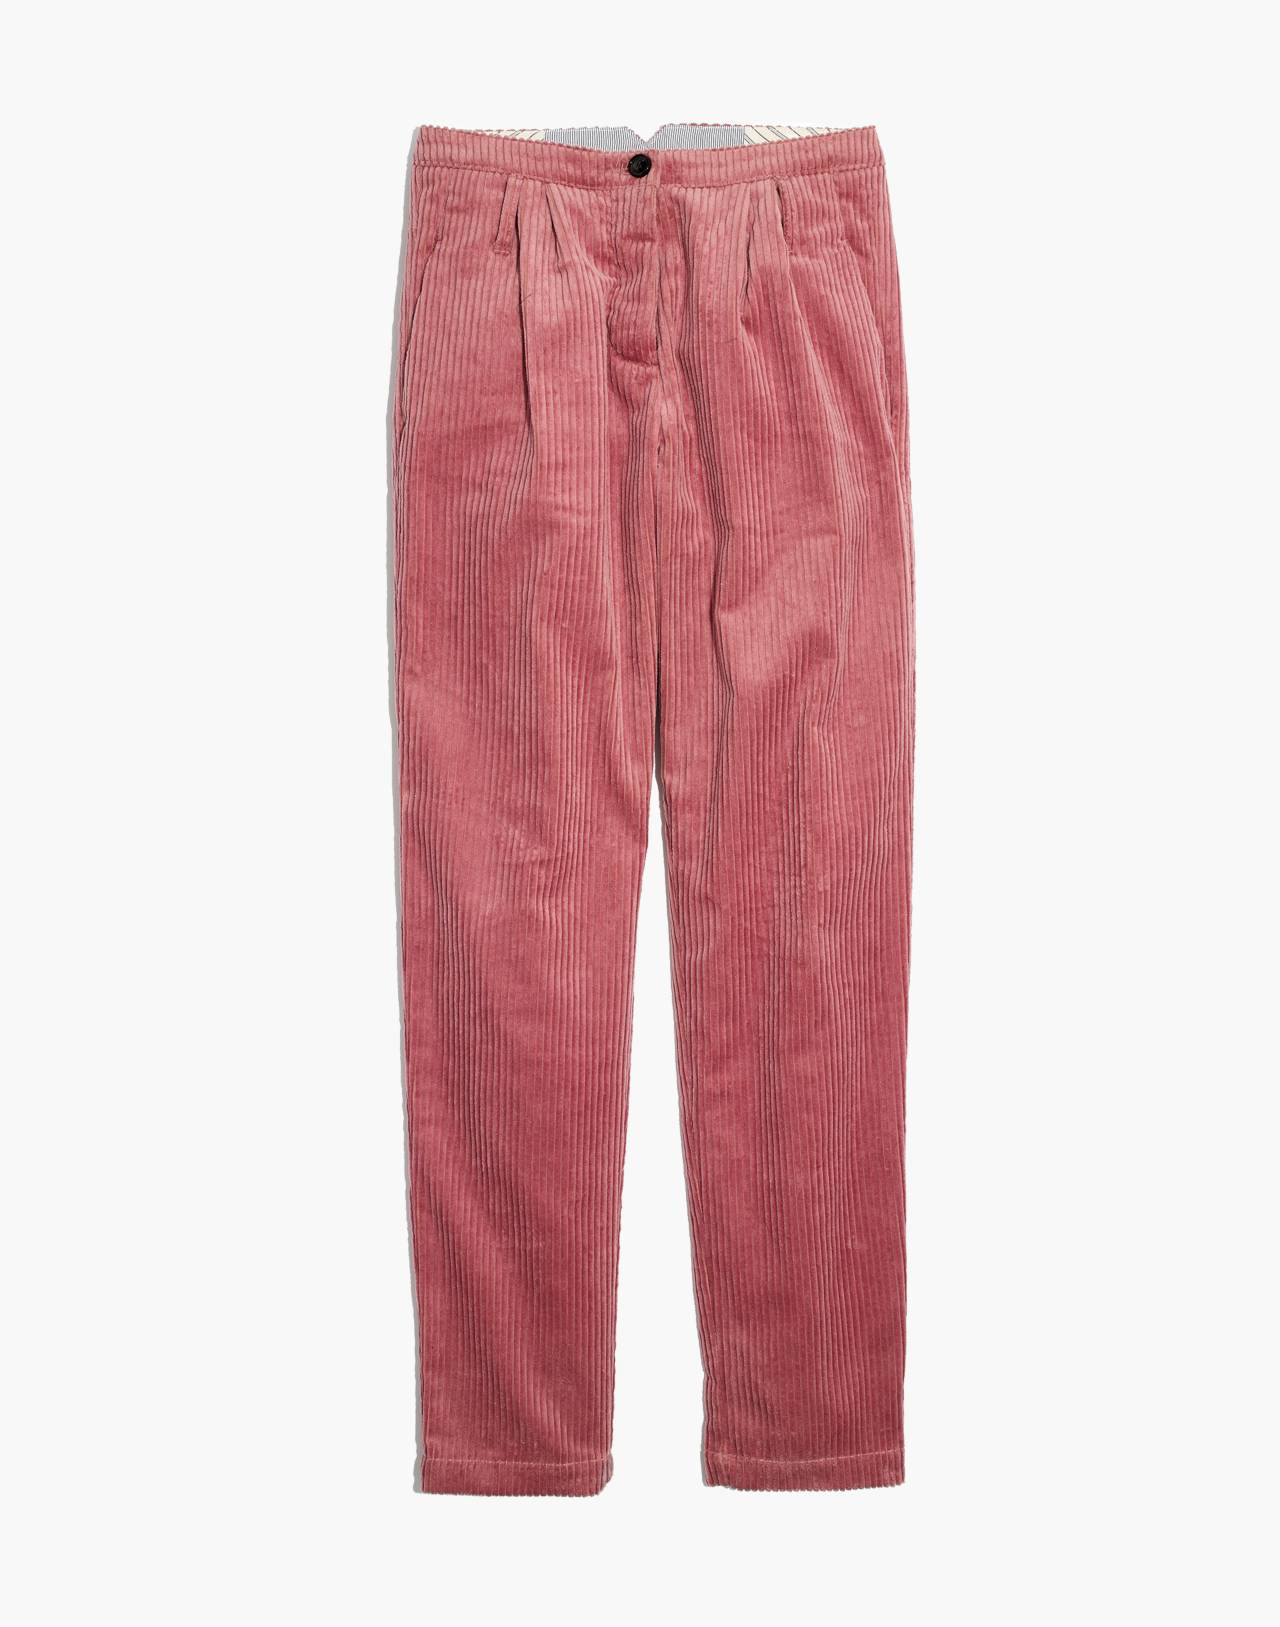 Sess�n™ Corduroy Rocco Pants in misty image 4